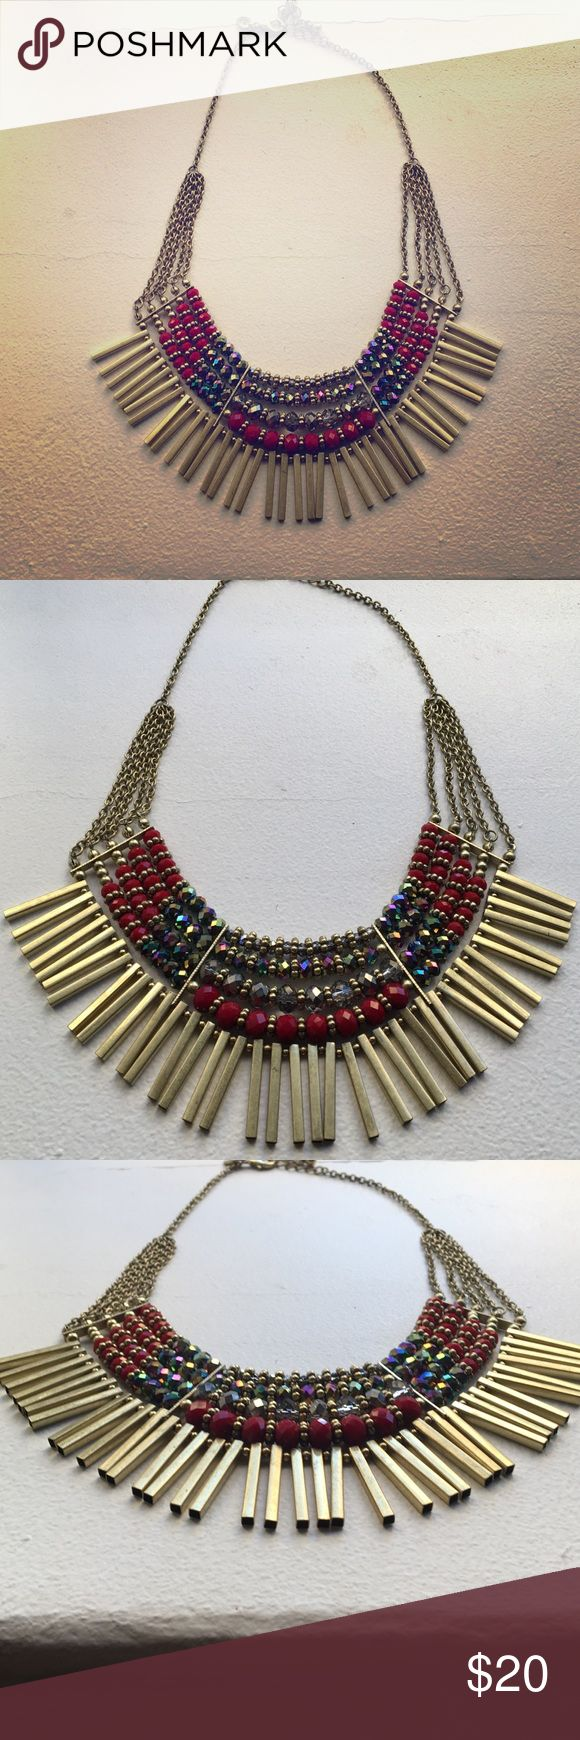 Lia Sophia Statement Necklace Lia Sophia Statement Necklace Lia Sophia Jewelry Necklaces